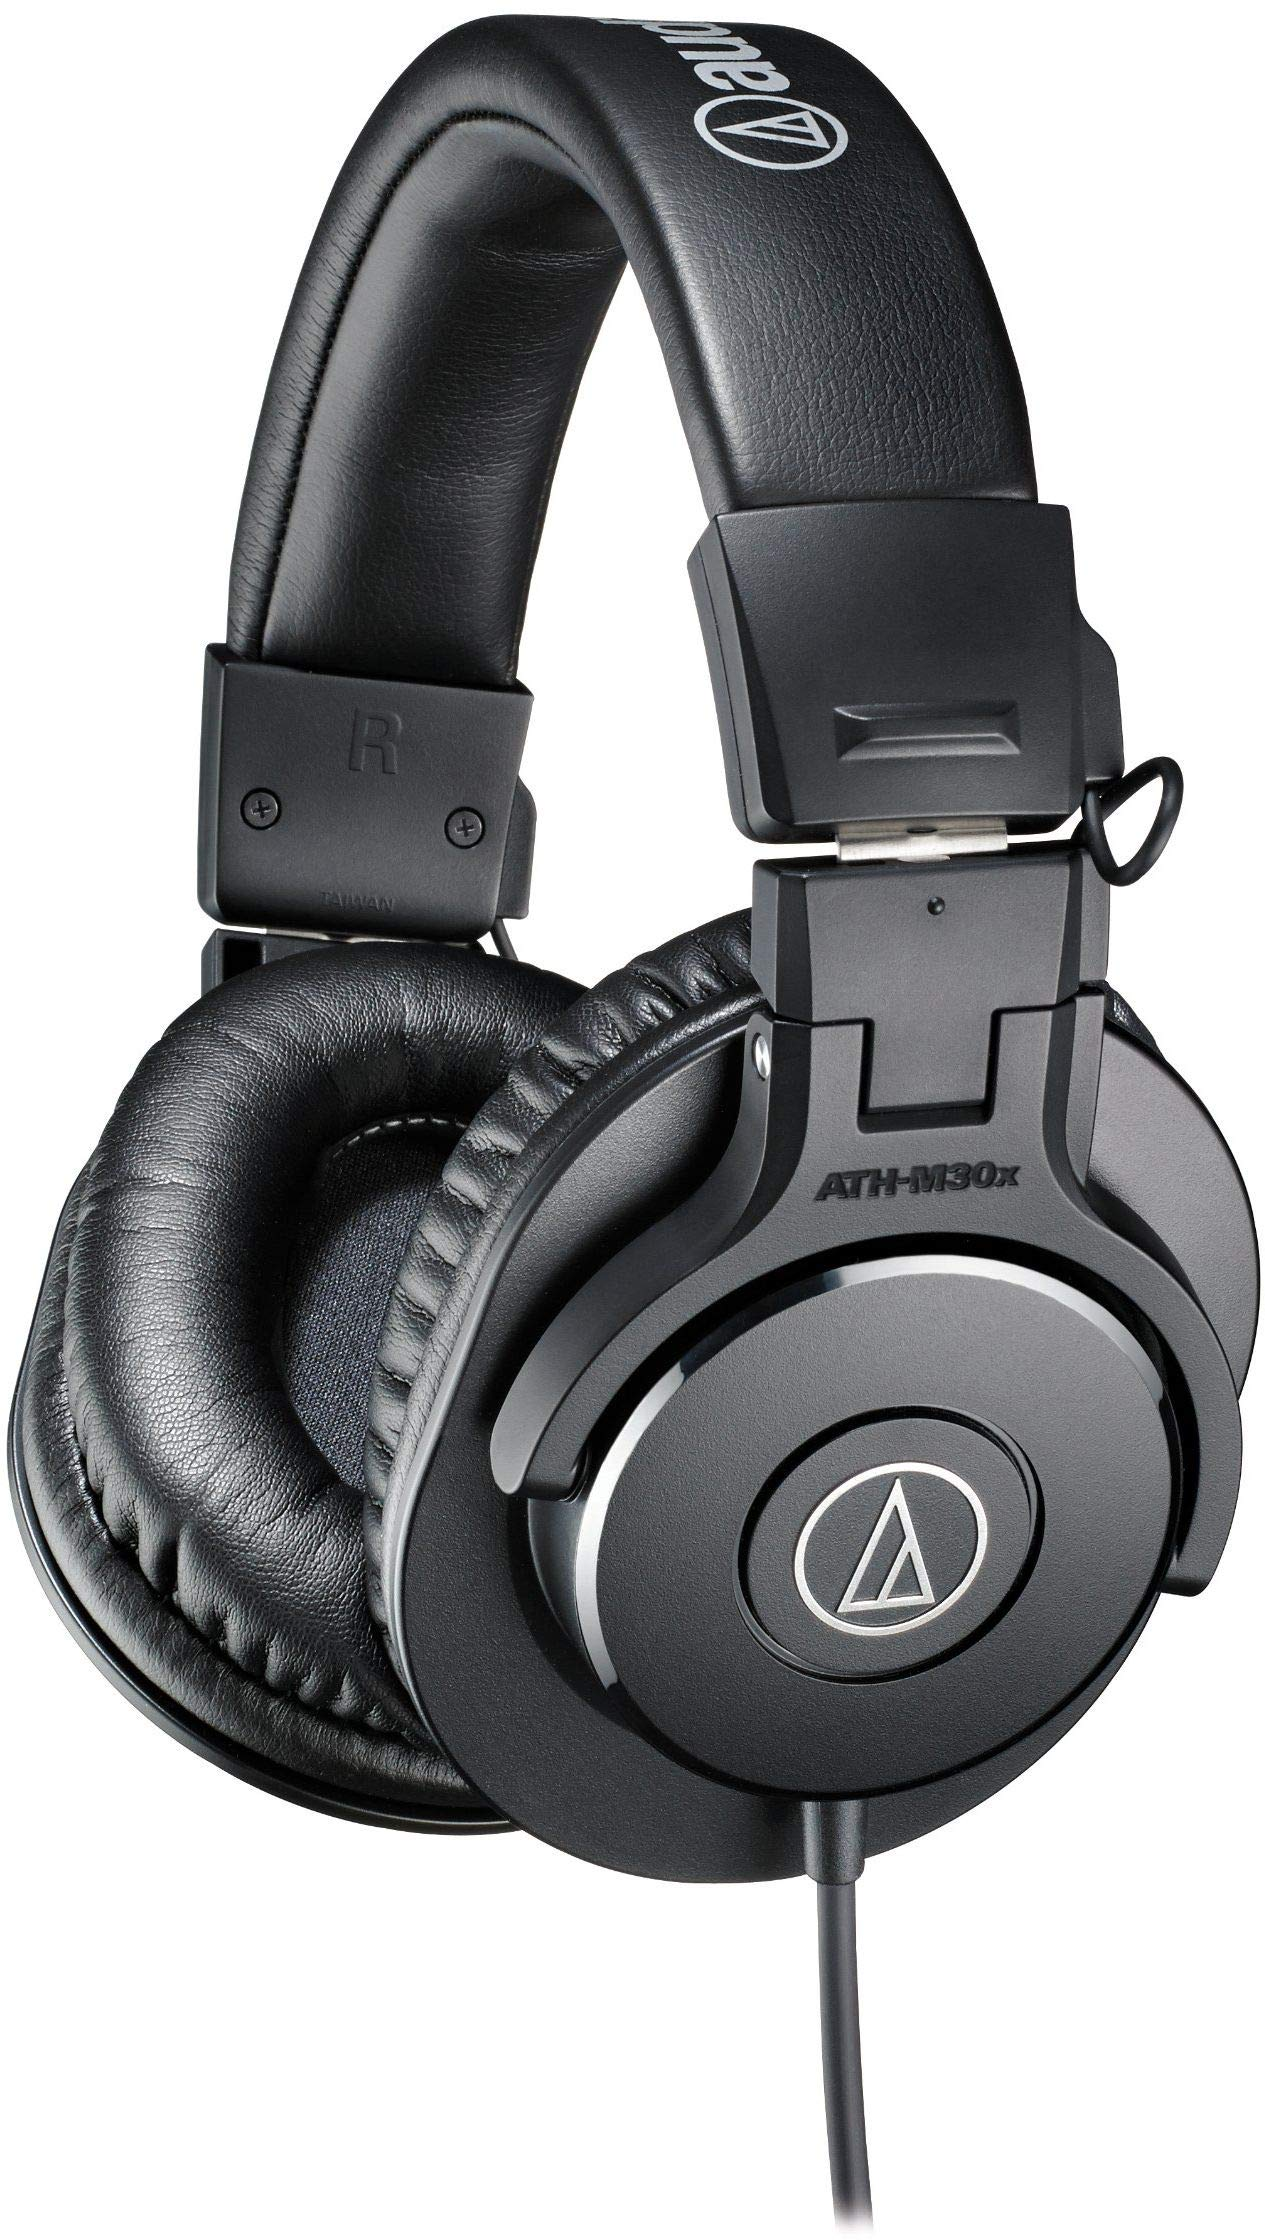 Audio-Technica ATH-M30x Professional Studio Monitor Headphones, Black by Audio-Technica